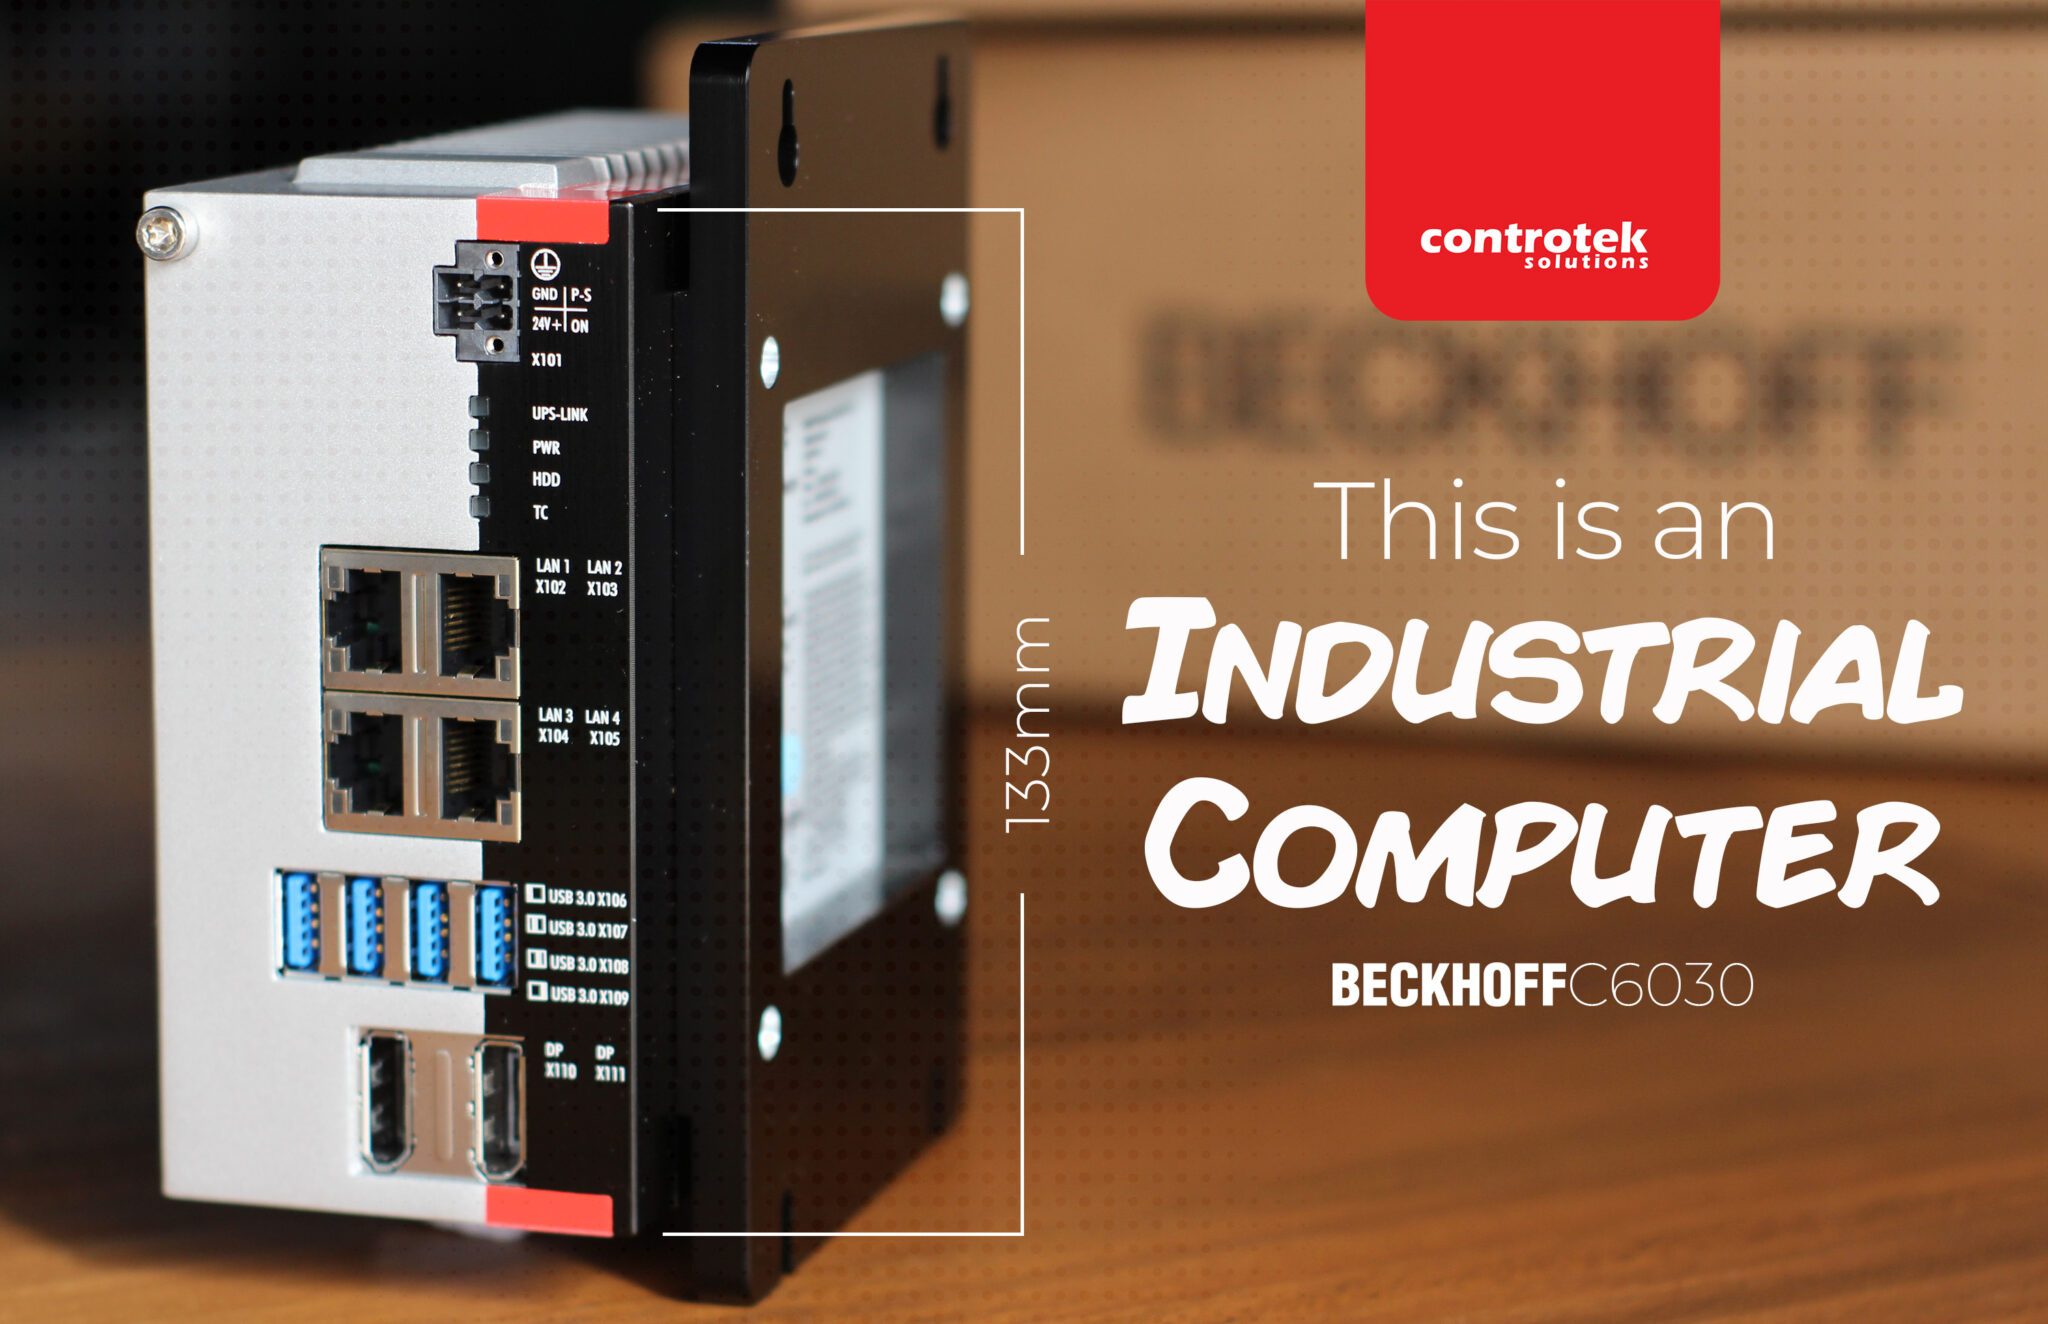 Yes, this is an Industrial Computer | Beckhoff C6030